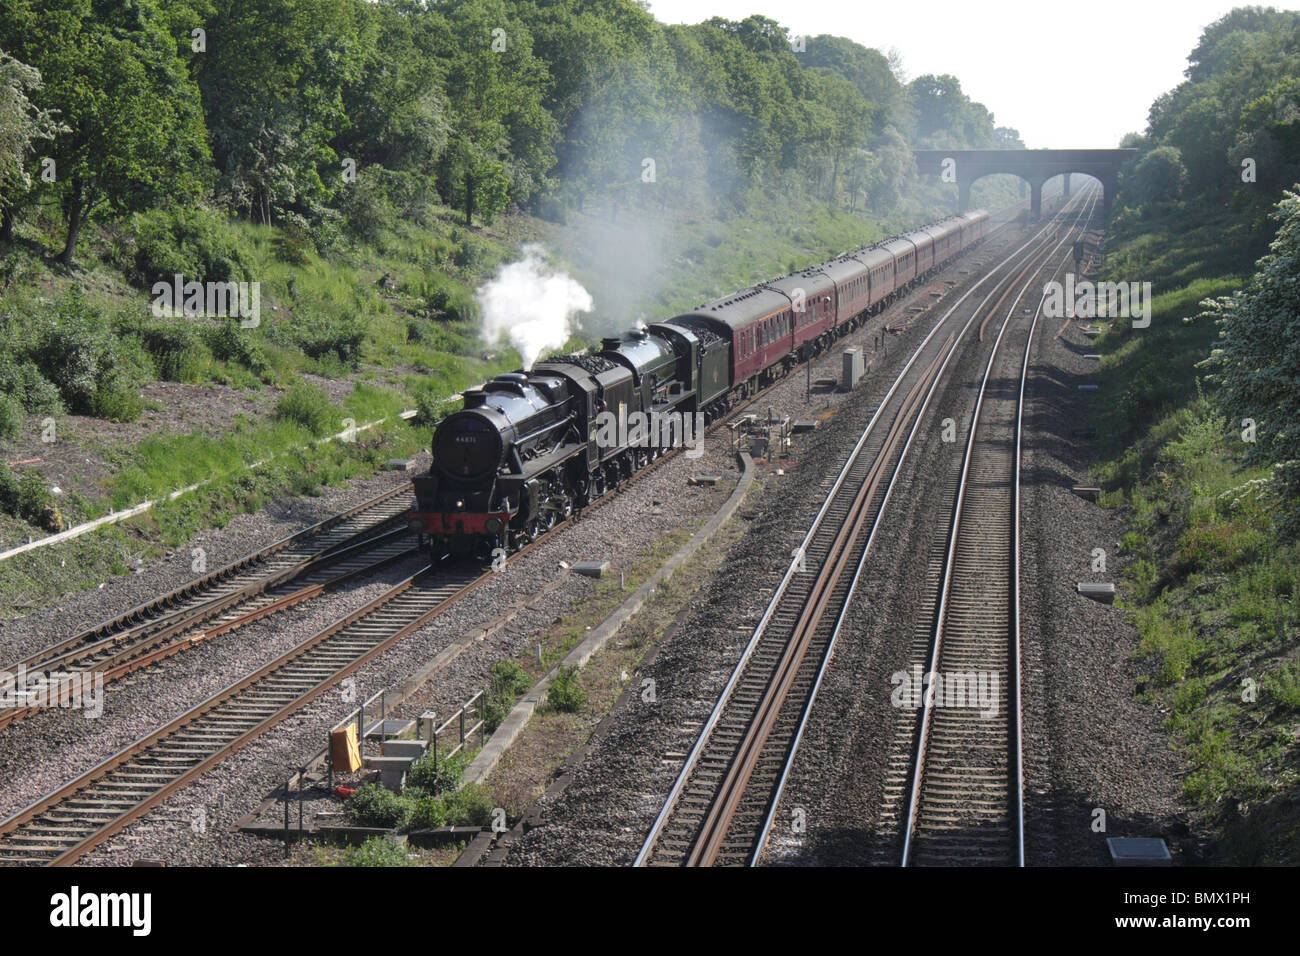 Class 5 and King Arthur 460 steam locomotives at Twyford 22 May 2010 - Stock Image